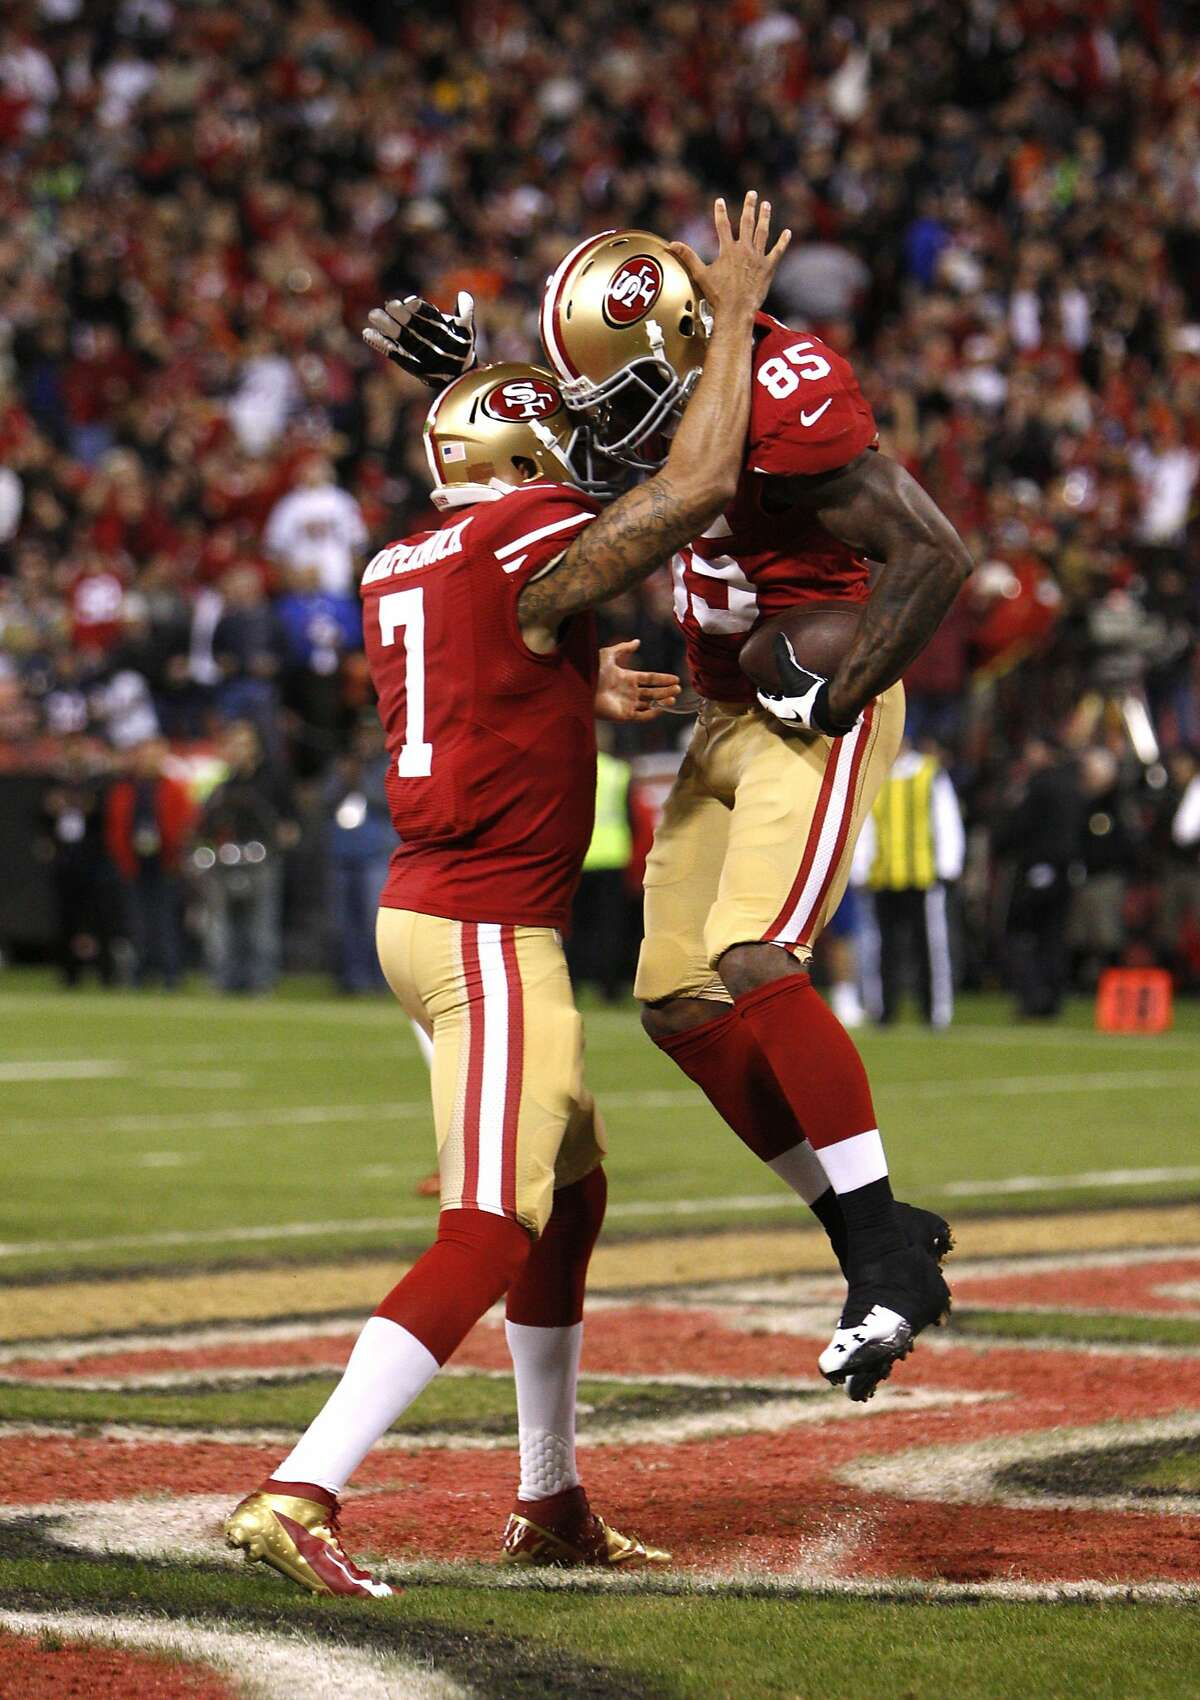 Quarterback Colin Kaepernick (7) celebrates with tight end Vernon Davis (85) after a touchdown in the first quarter of the San Francisco 49ers game against the Chicago Bears at Candlestick Park in San Francisco, Calif., on Sunday November 19, 2012.